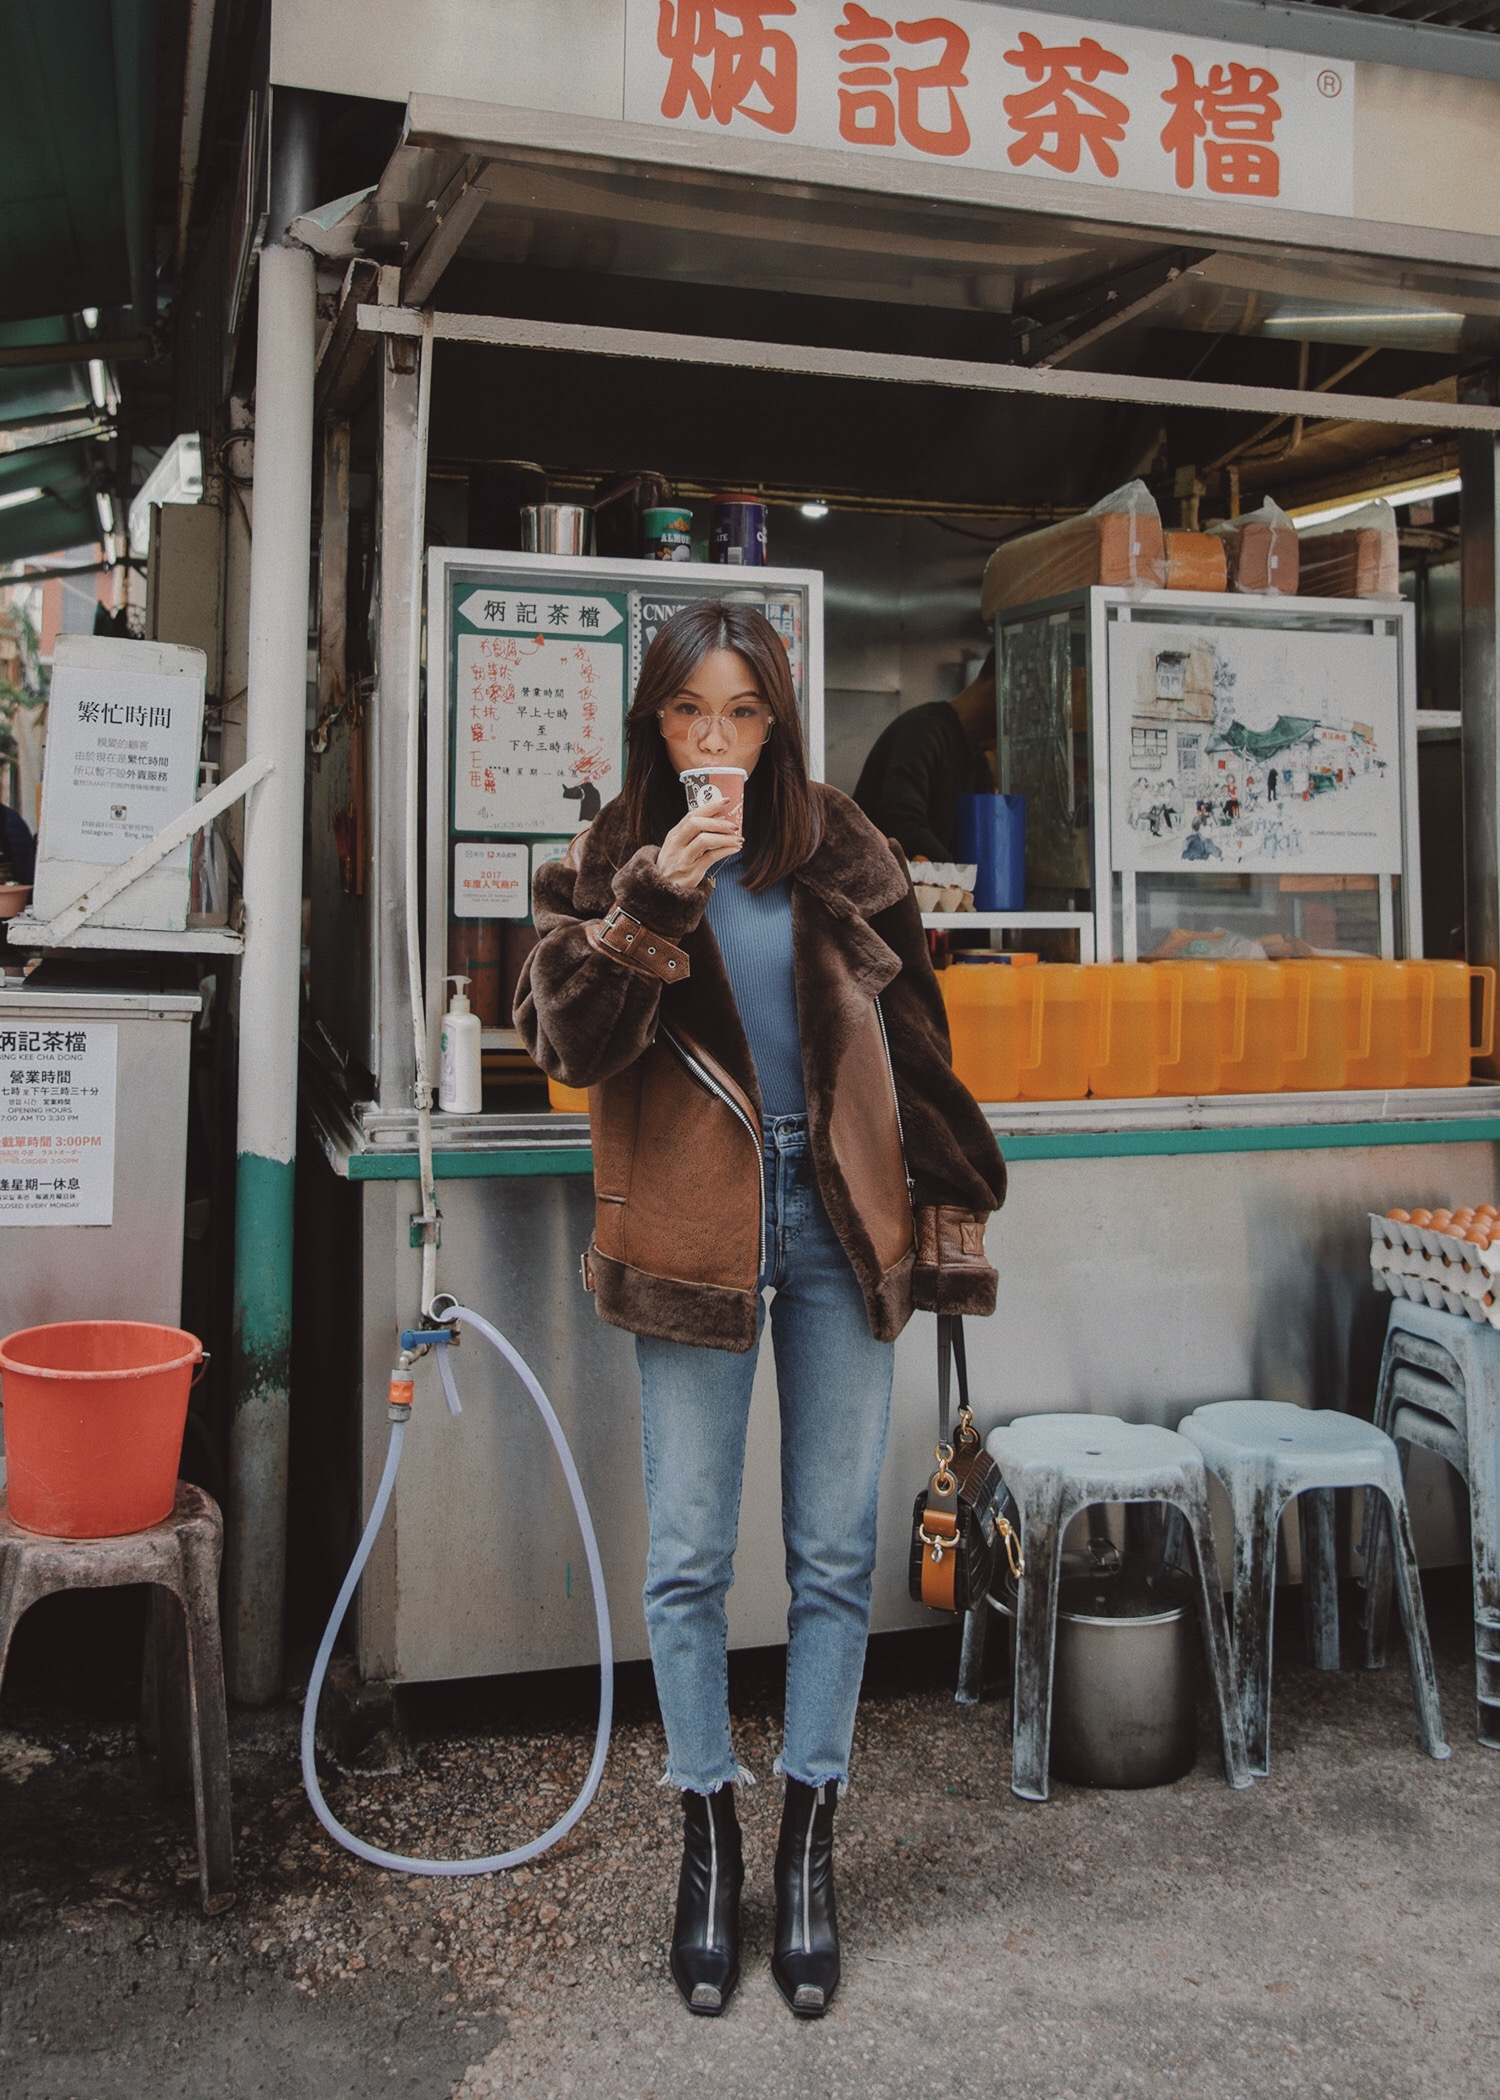 Jenny Tsang of Tsangtastic wearing nicole benisti teddy shearling jacket and levi's wedgie icon jeans in Hong Kong